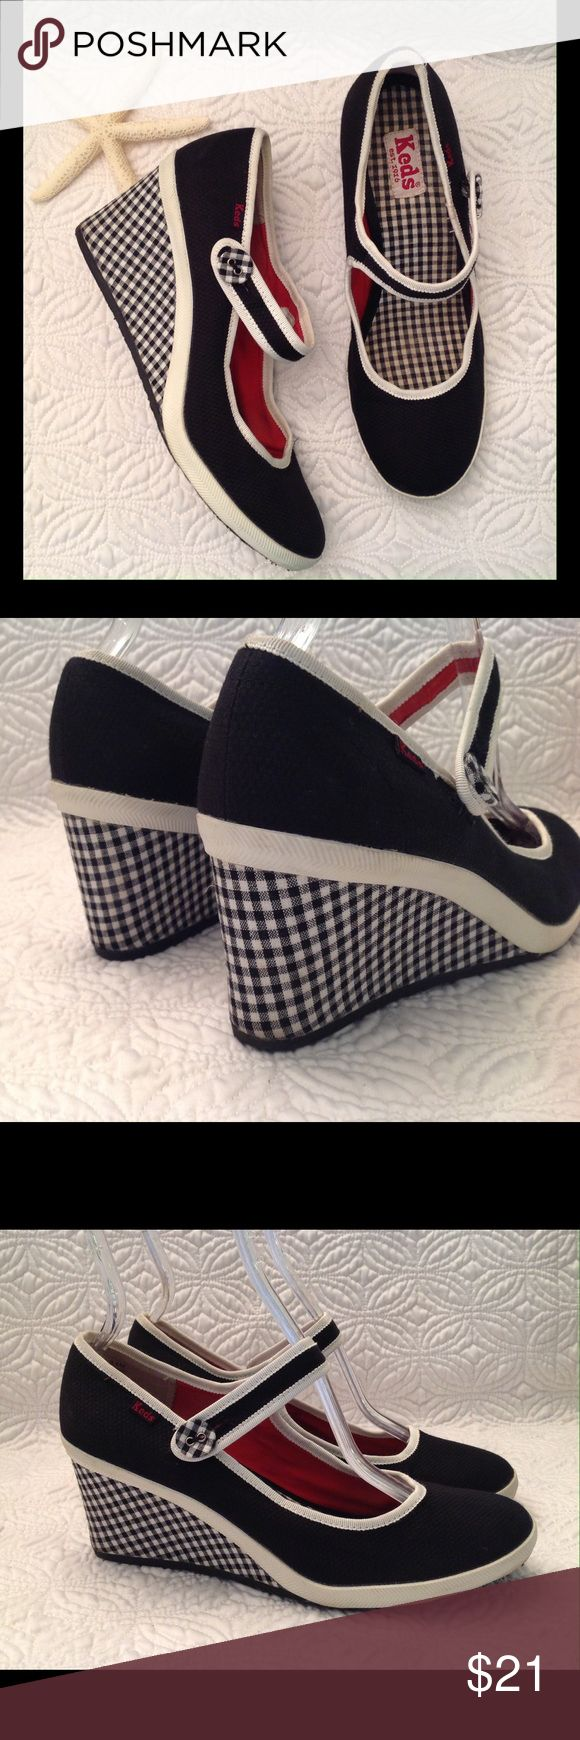 "KEDS Wedge Mary Janes Black & White Checkered Gently loved. KEDS  Mary Jane 3"" Wedge Shoes  Black & White Checkered  Style: Midnight - WF29810  Size 8.5M Cushioned insole Interior measurement from toe to heel is 10"" Exterior measurement for the ball of the foot is 3.25"" Keds Shoes Platforms"